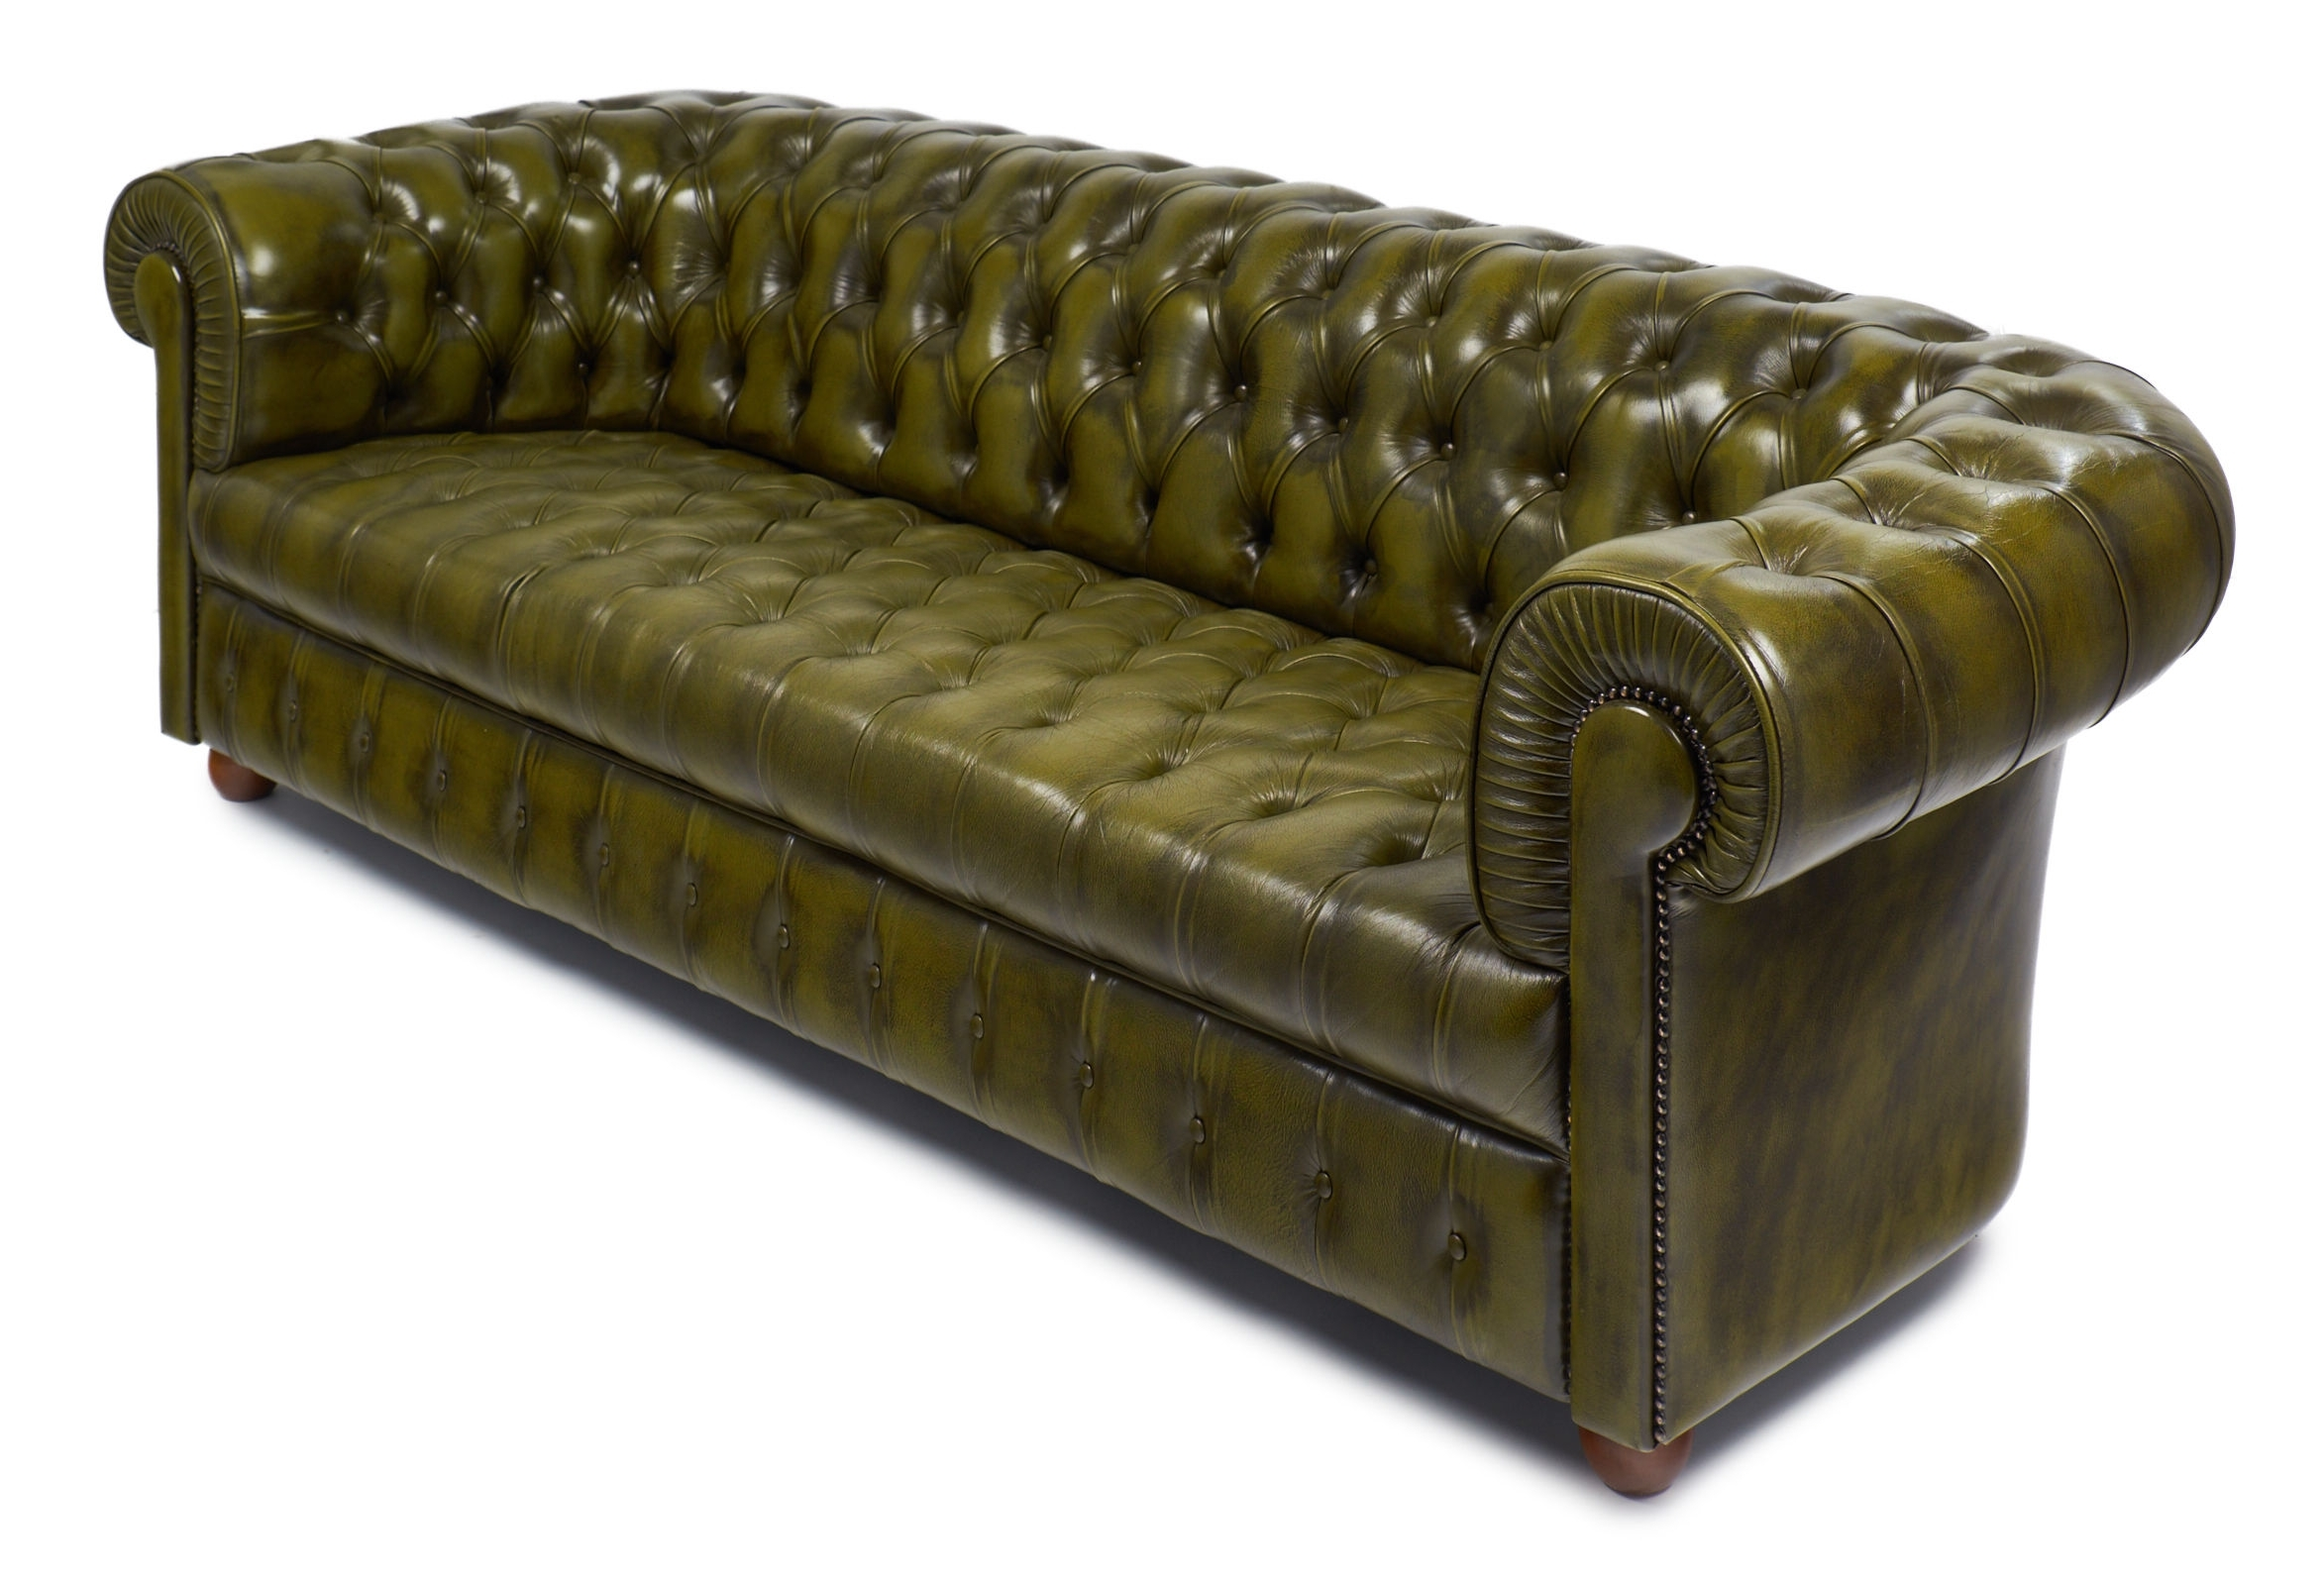 Vintage Green Leather English Chesterfield Sofa – Jean Marc Fray For Famous Vintage Chesterfield Sofas (View 17 of 20)